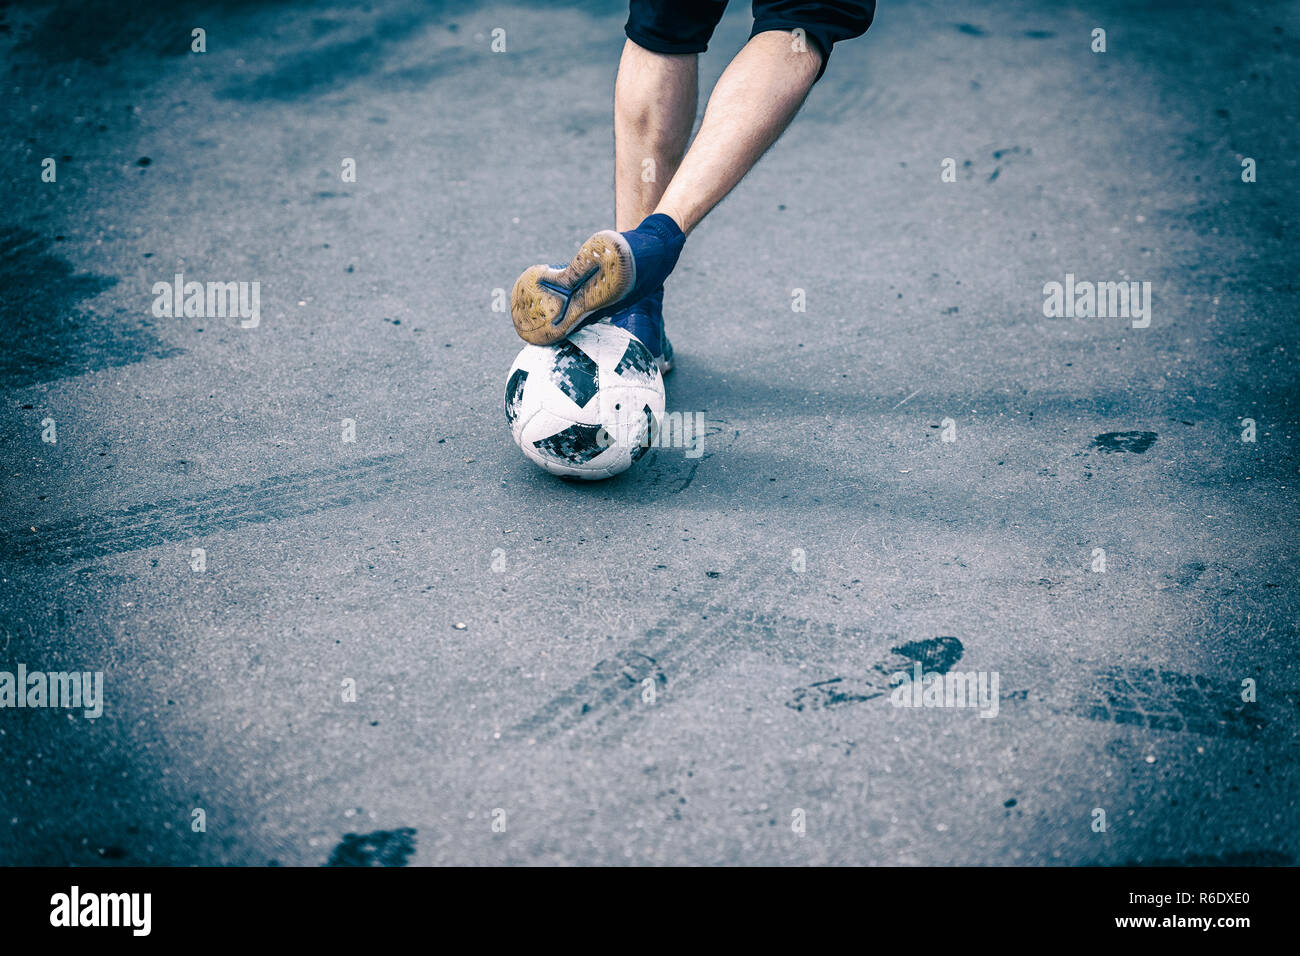 Legs, feet of football player, dribbling with the ball on asphalt in yard - Stock Image